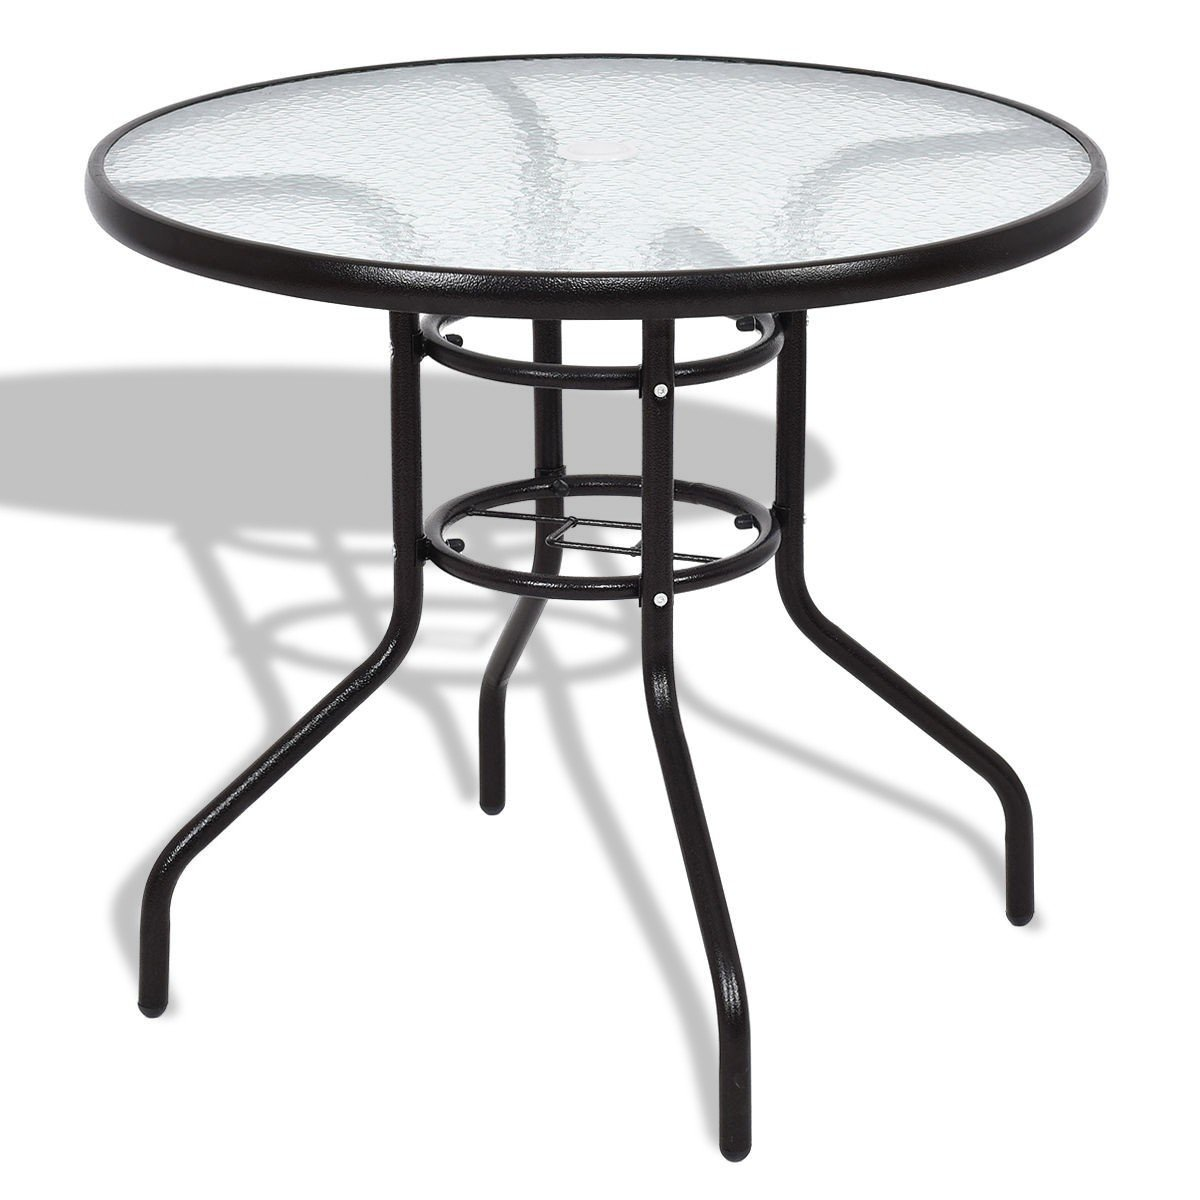 Custpromo 31 1/2'' Outdoor Dining Patio Table Tempered Glass Stand Round Table Deck Garden Home Furniture Table (Round Table 1)